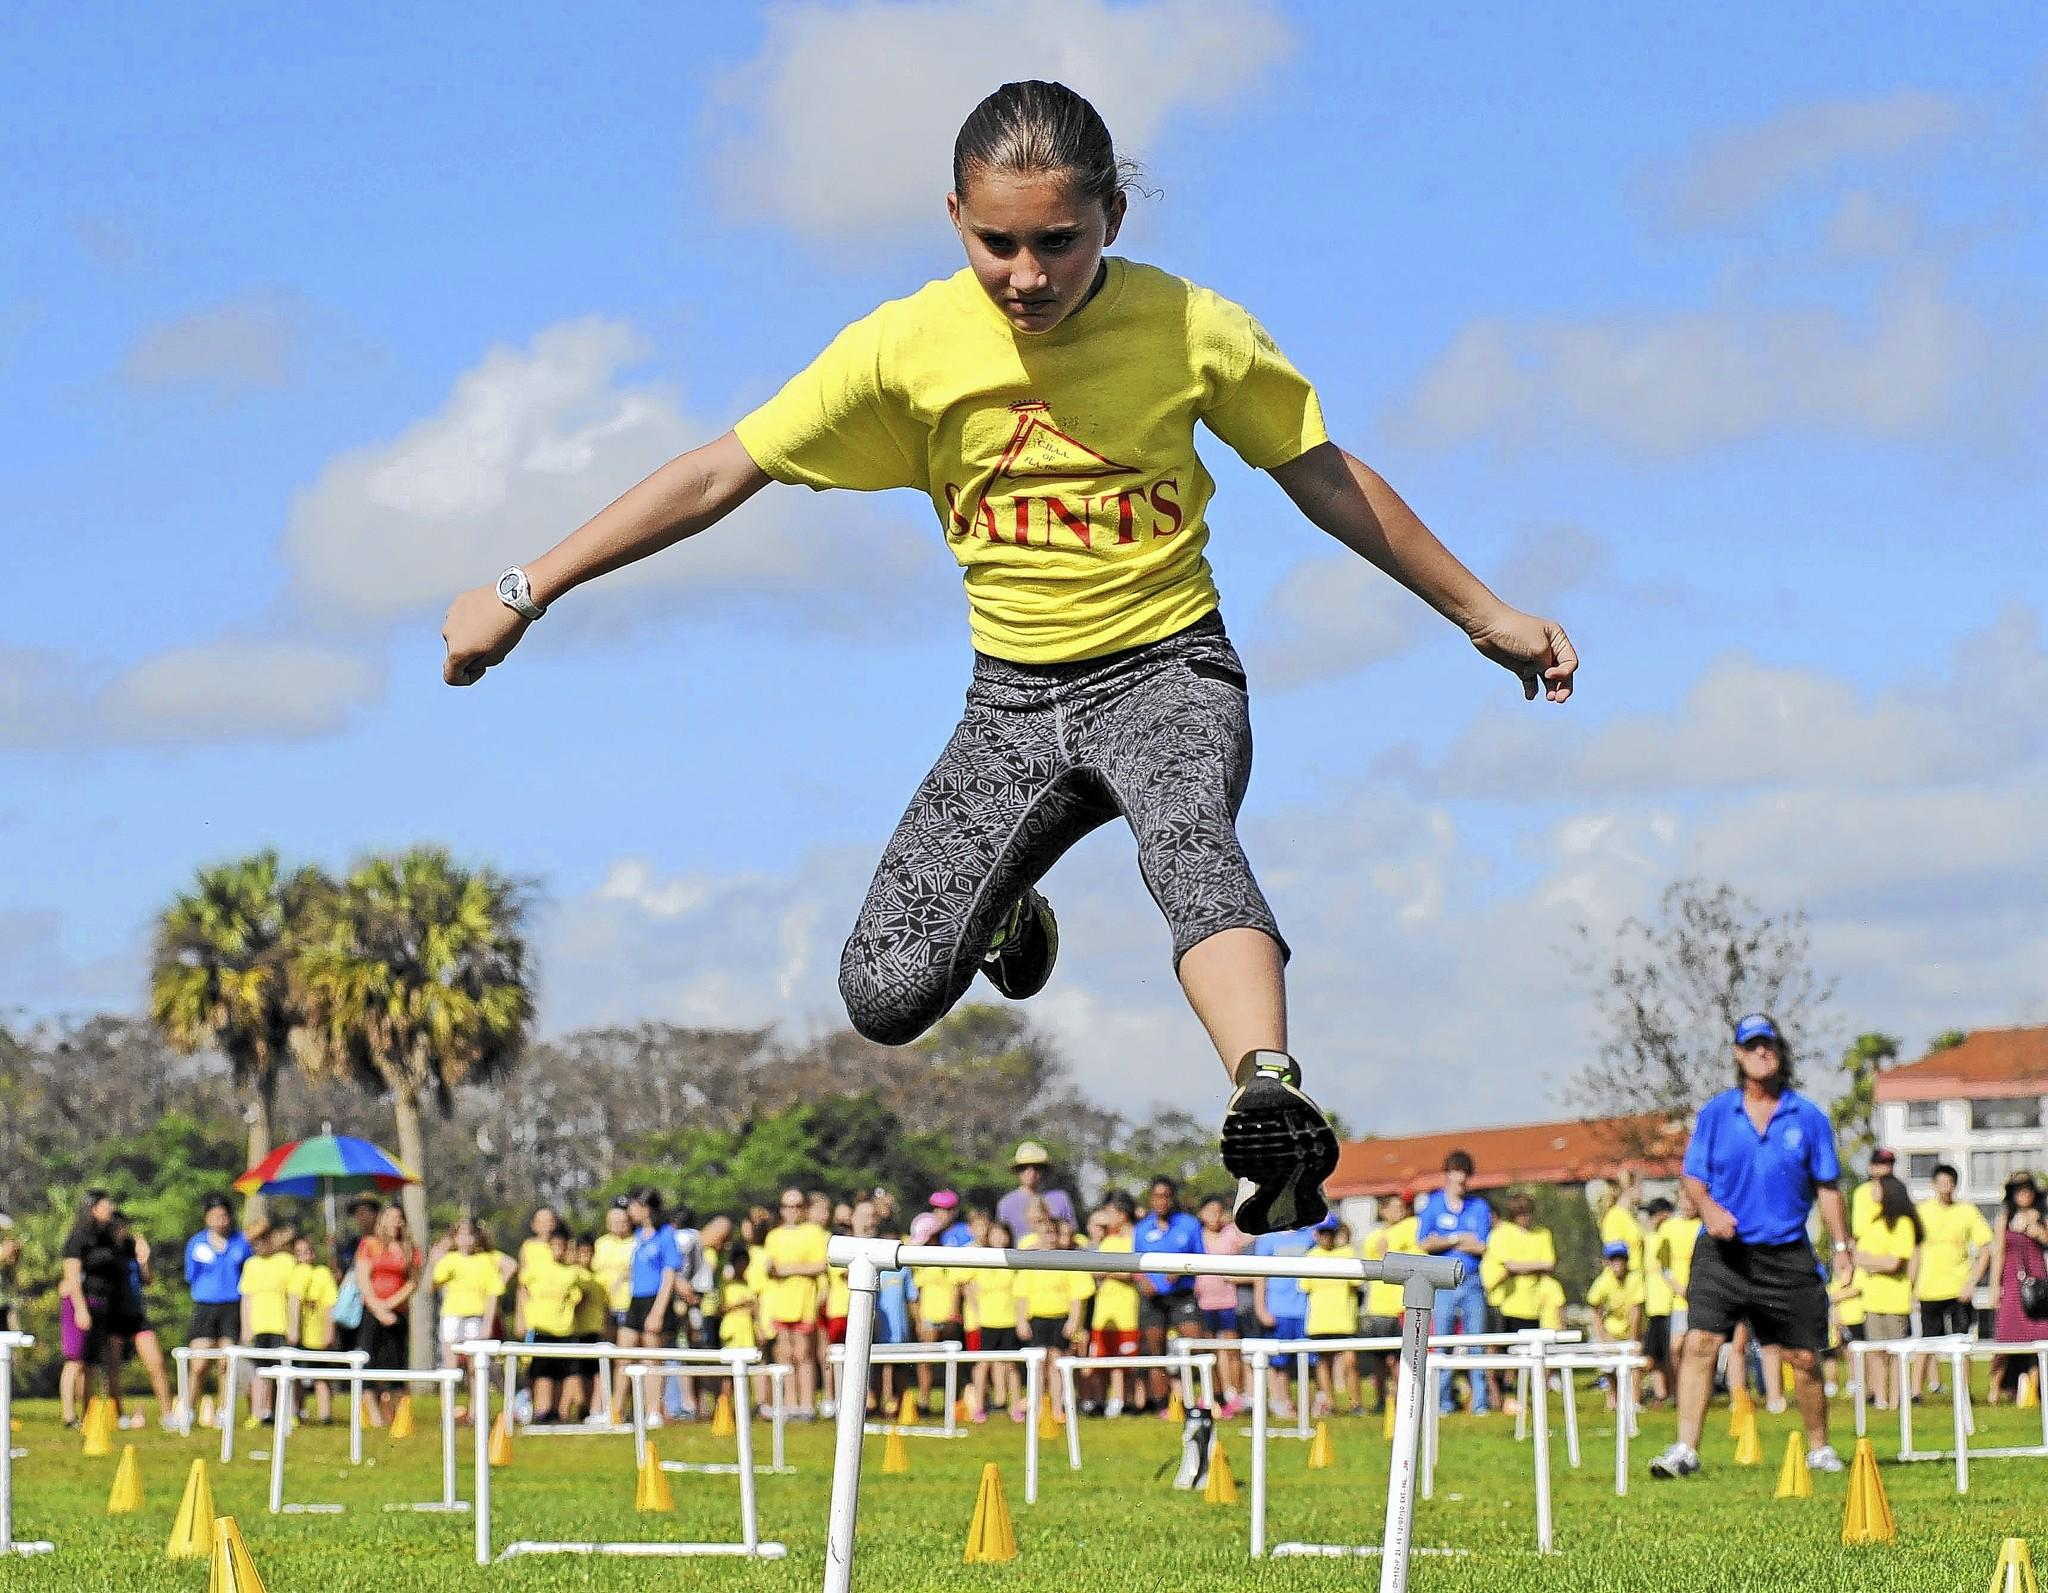 Boca Raton's Katherine Bielec soars over a hurdle during the annual Saints International Track and Field meet for home schoolers recently at Tradewinds Park in Coconut Creek. Bielec was one of an estimated 1,300 participants from Palm Beach and Broward counties.